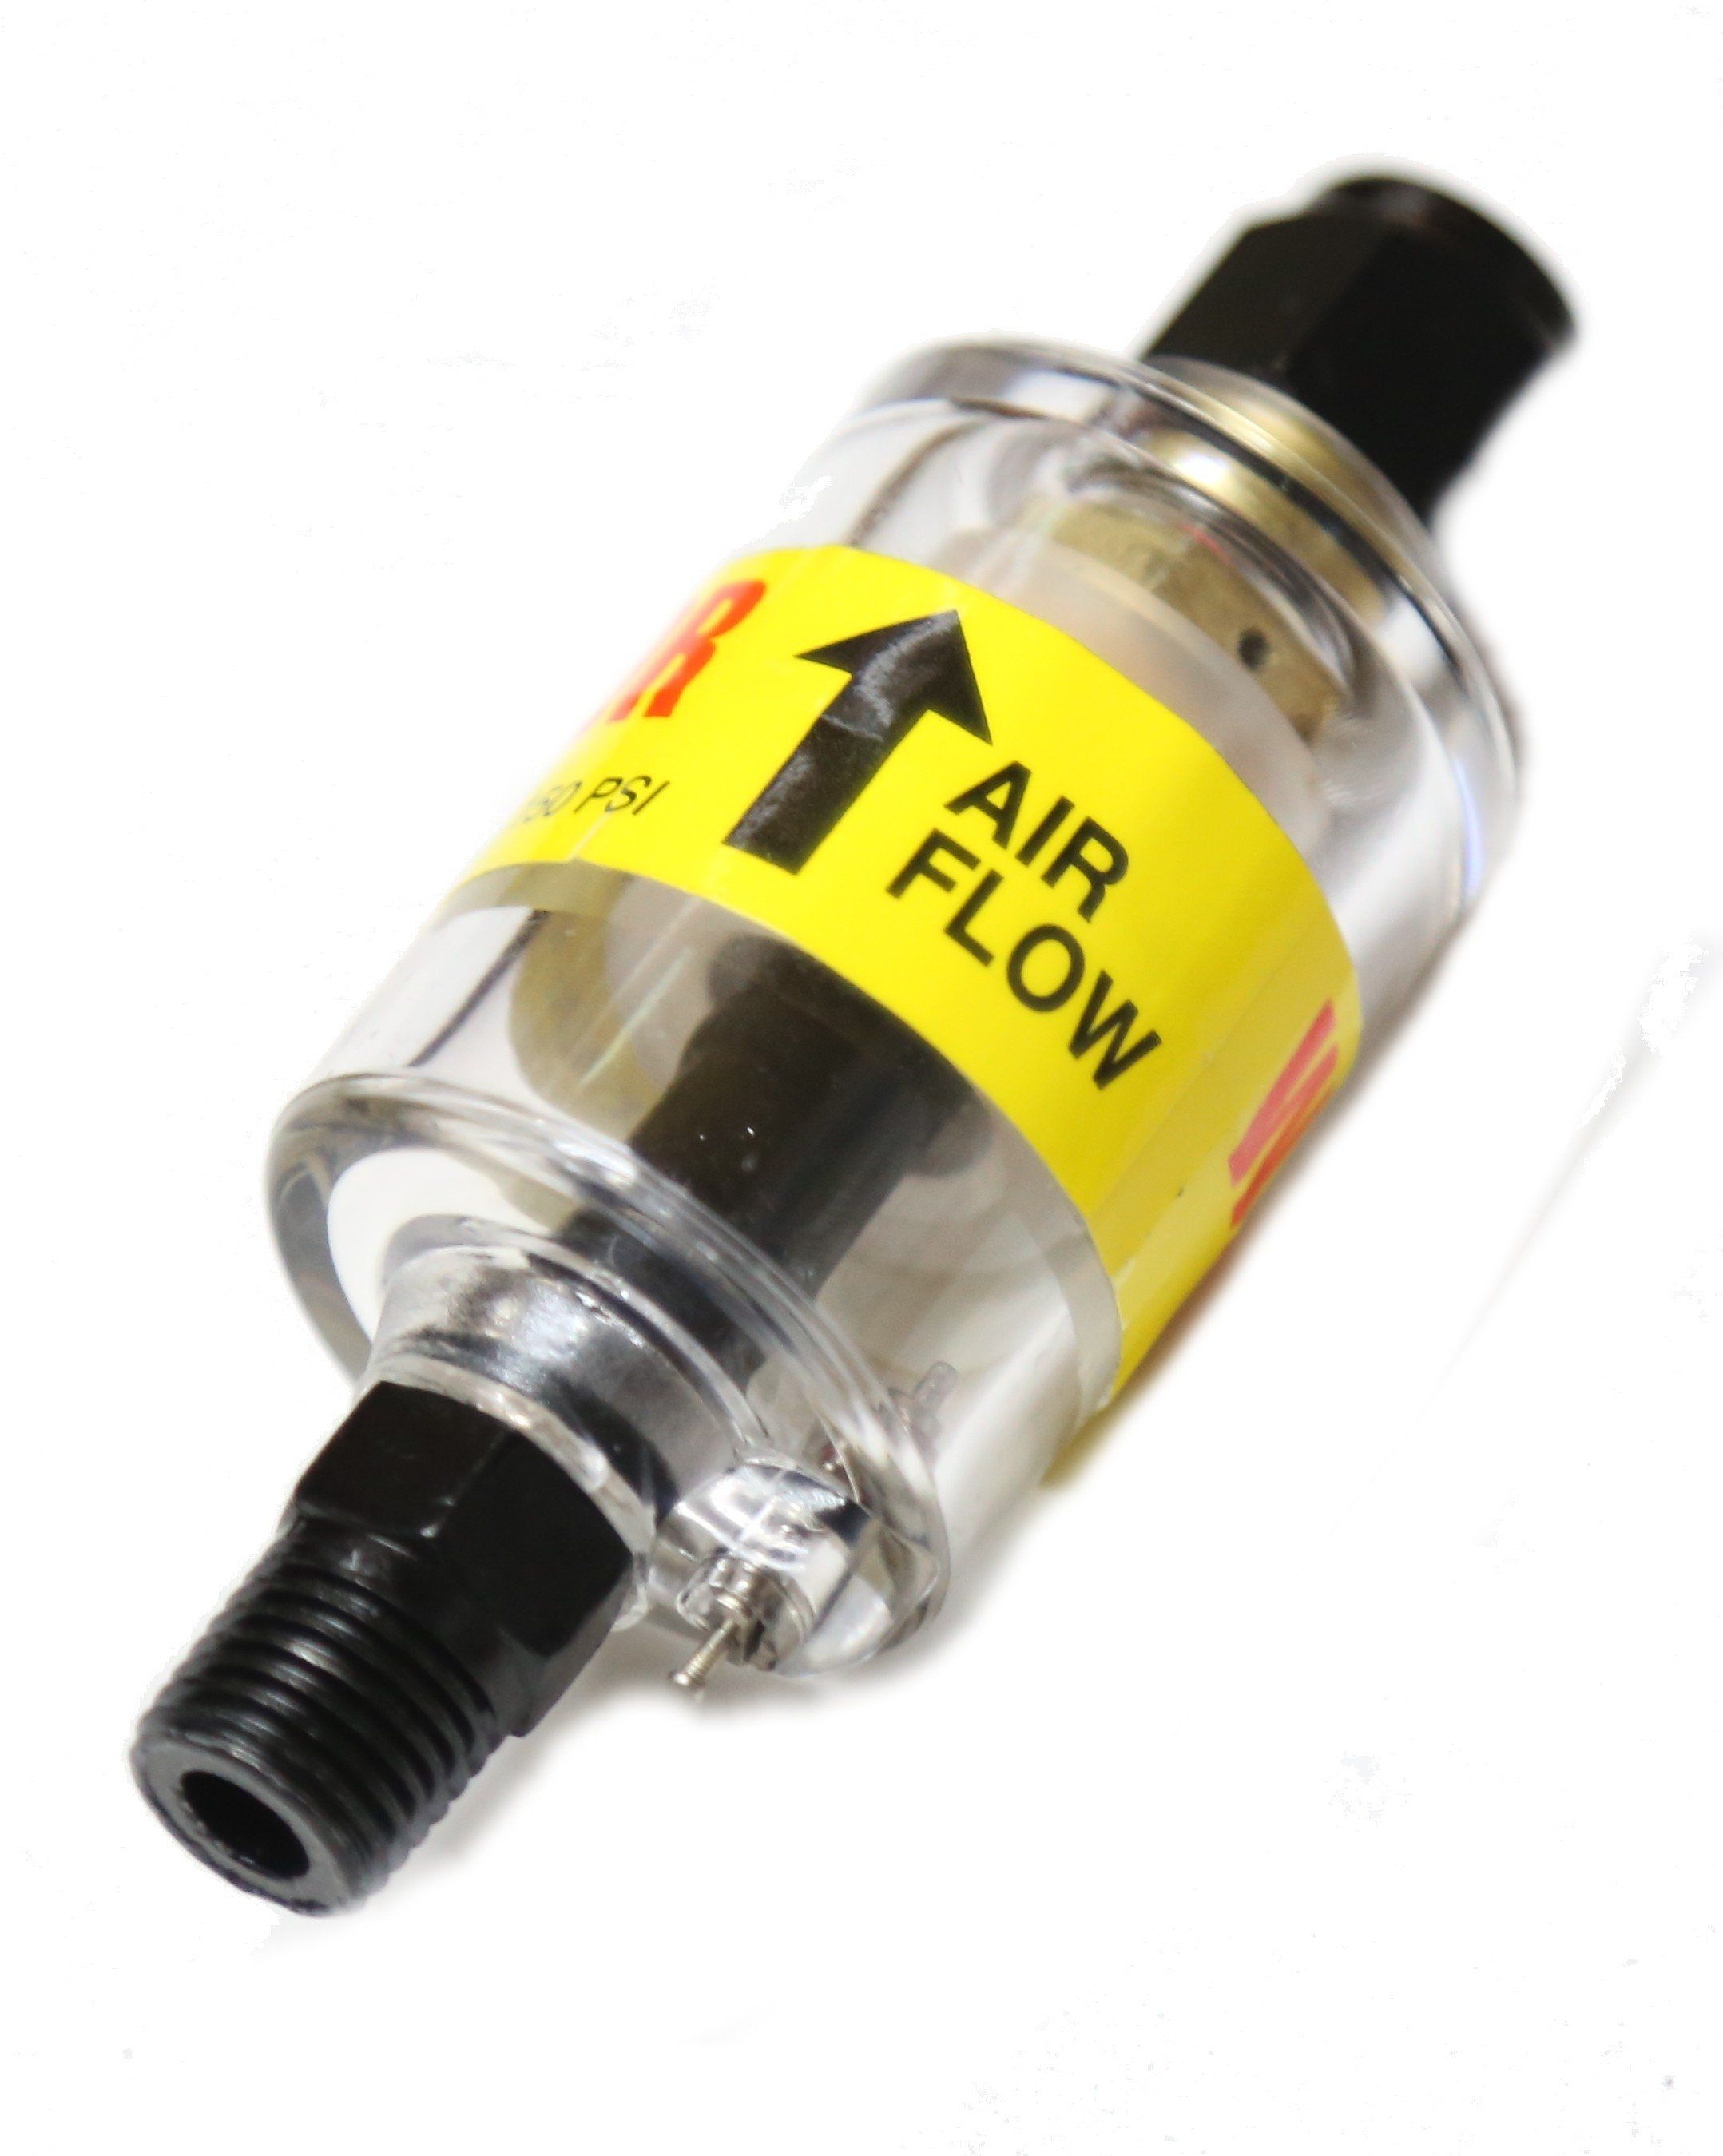 ZN312 Filter Air tools, Oil water, Filters